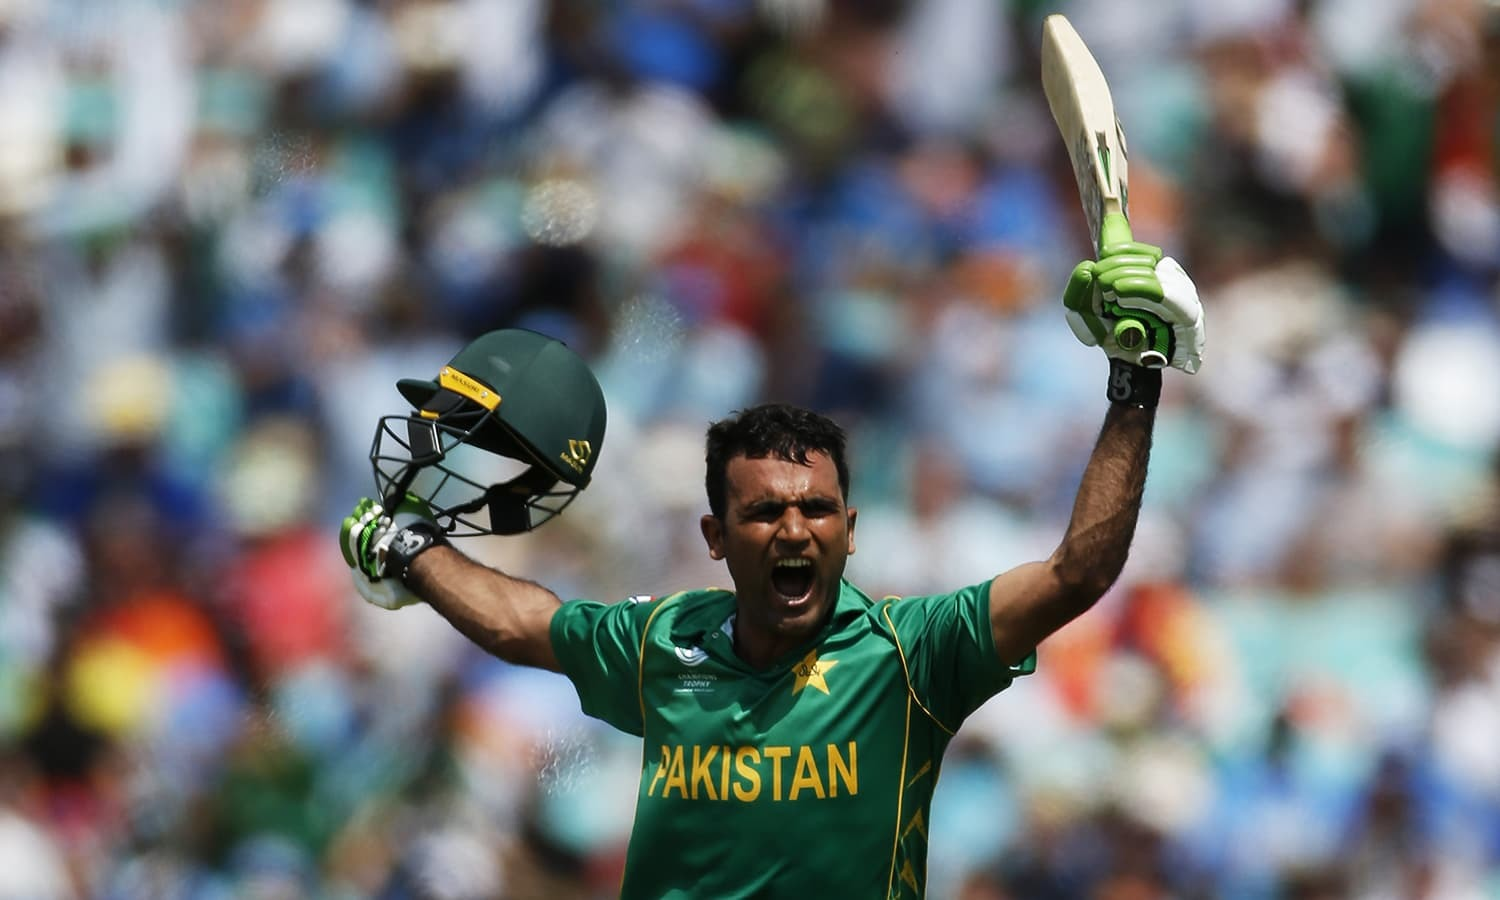 A matter of stats: What makes the Pak-India Champions Trophy final historic?